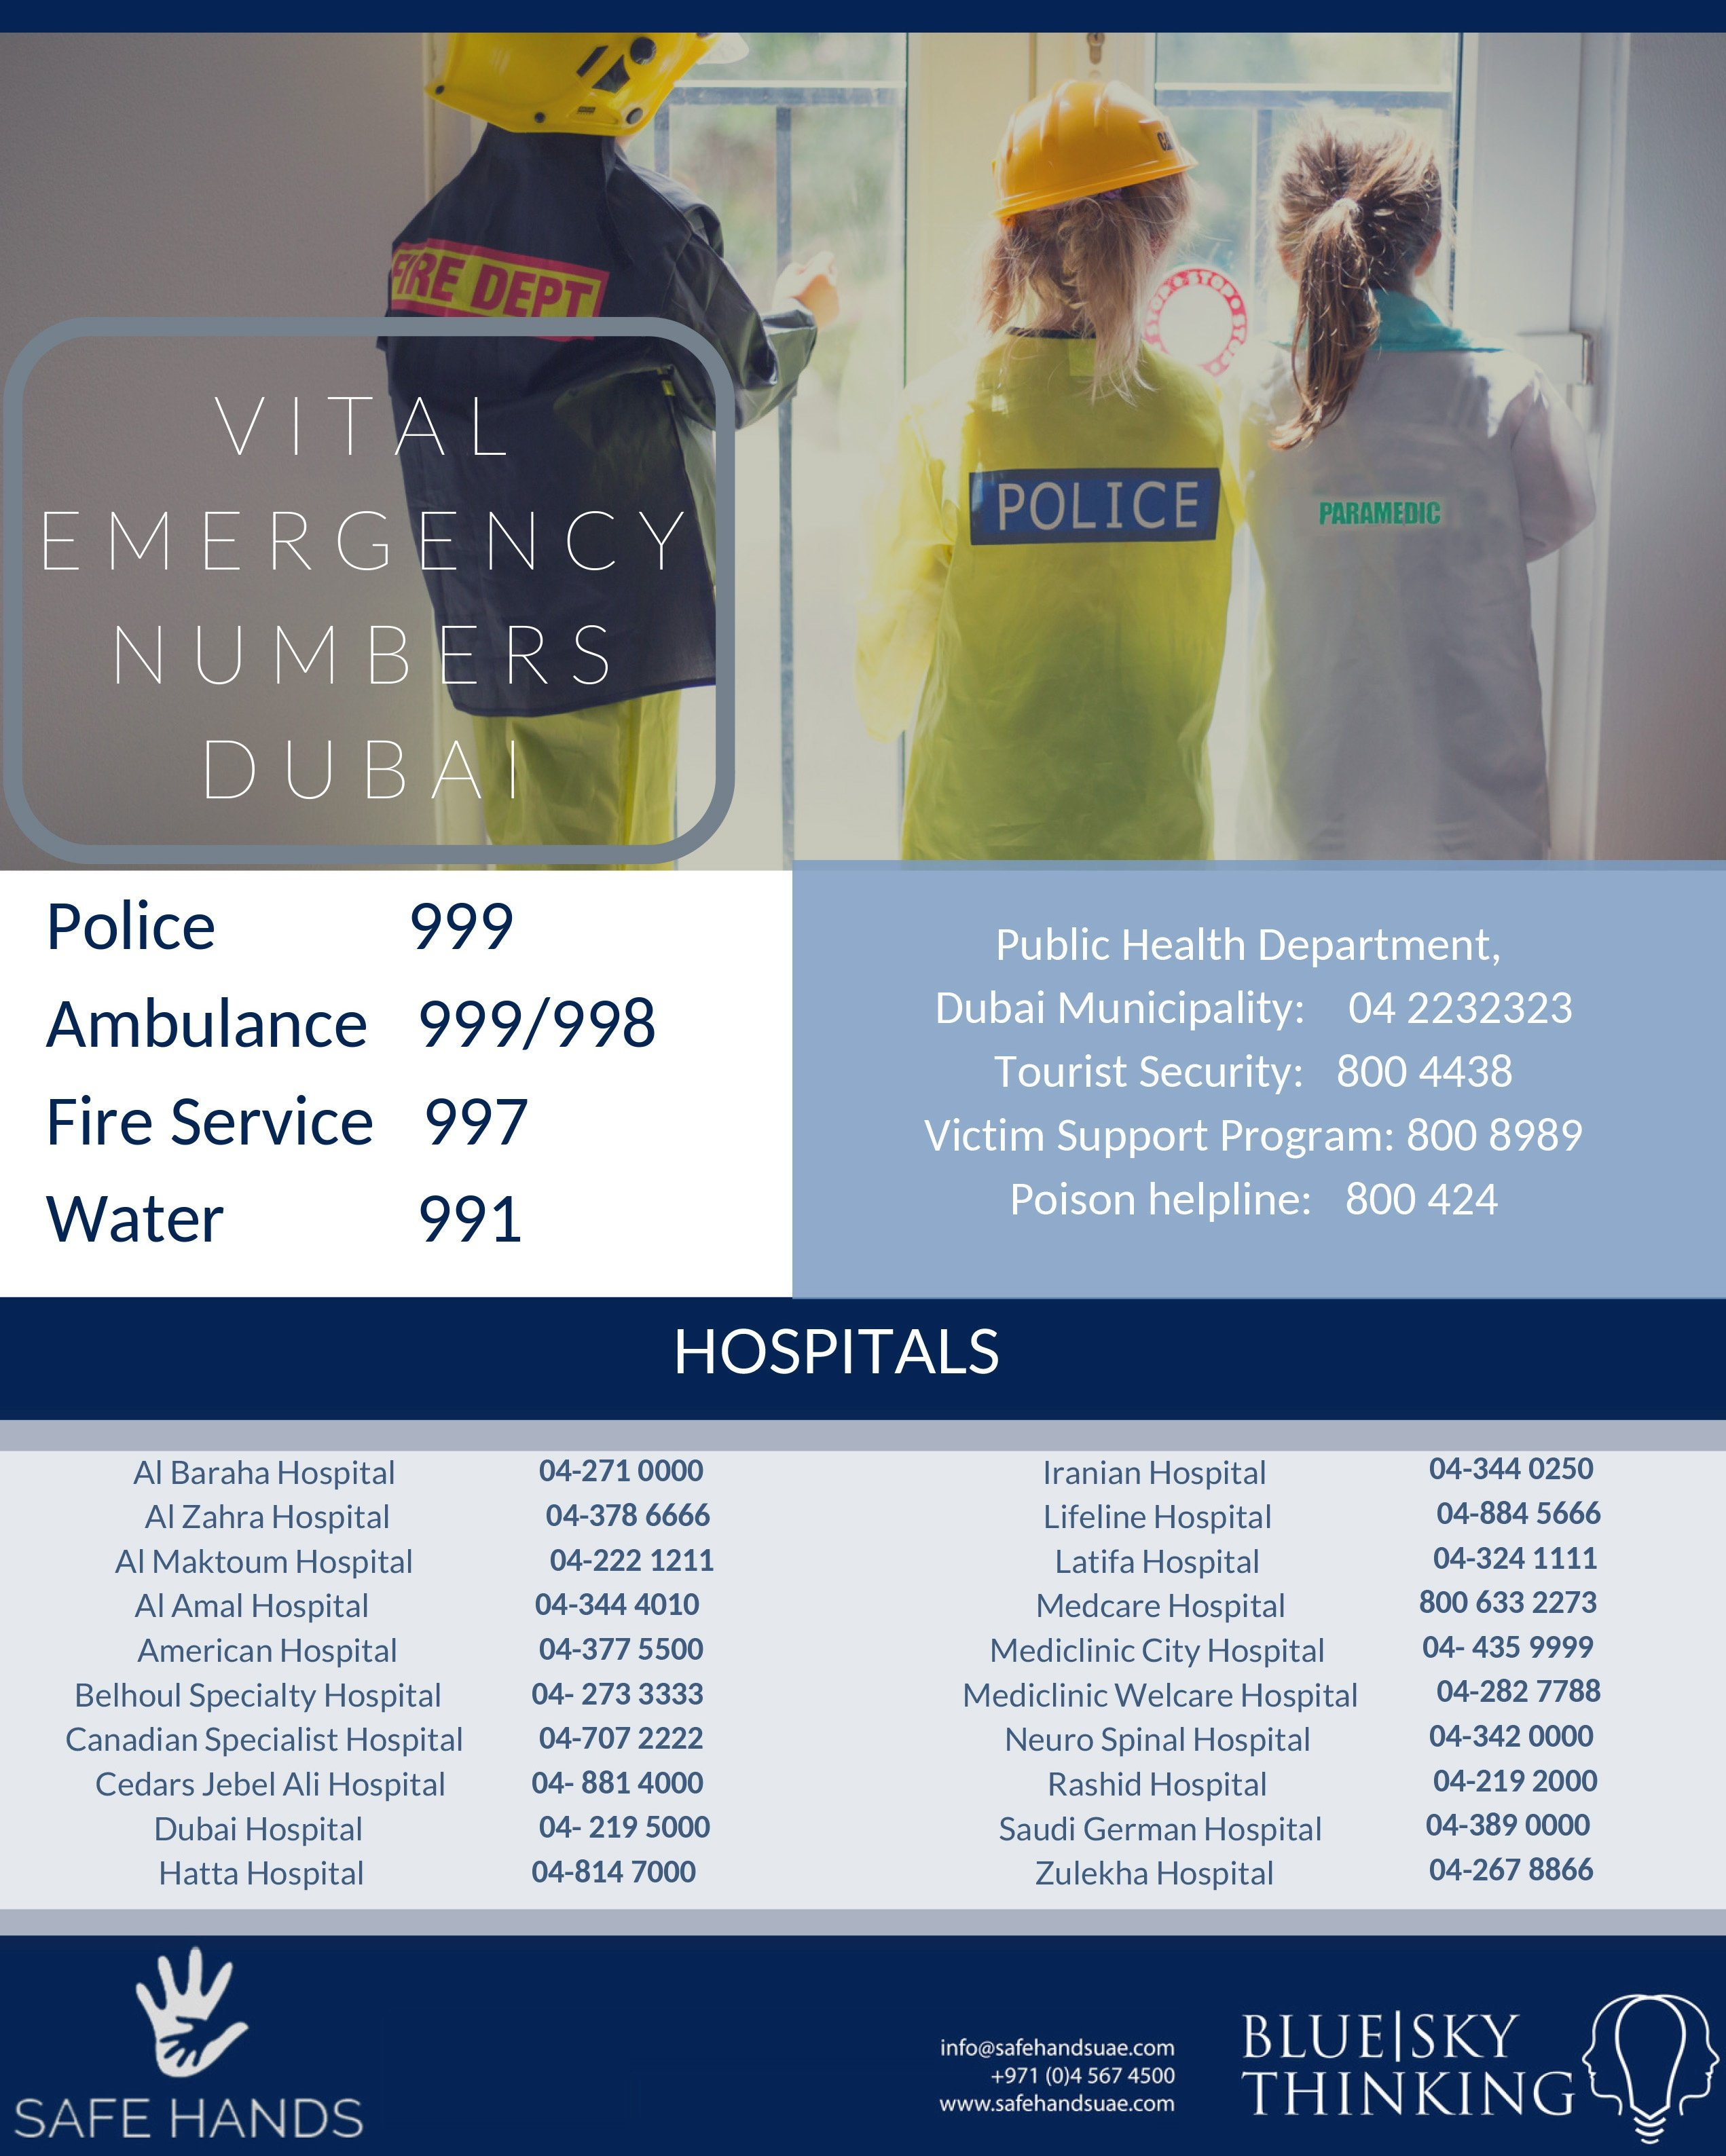 emergency numbers Dubai